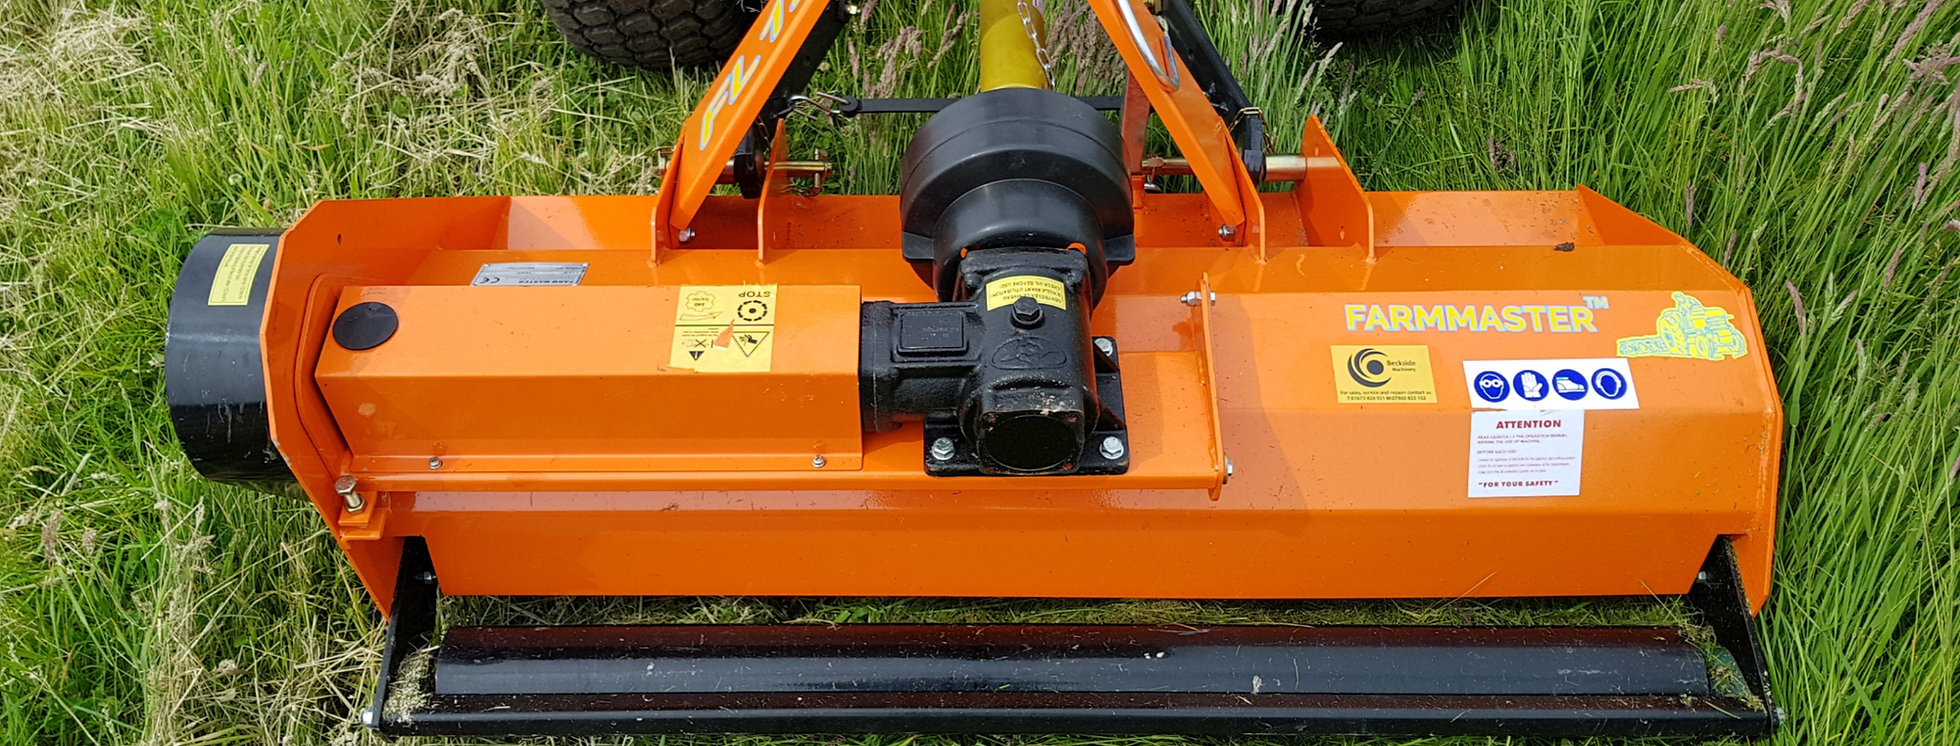 FarmMaster Flail Mower for sale UK | Flail Mowers For Compact Tractors